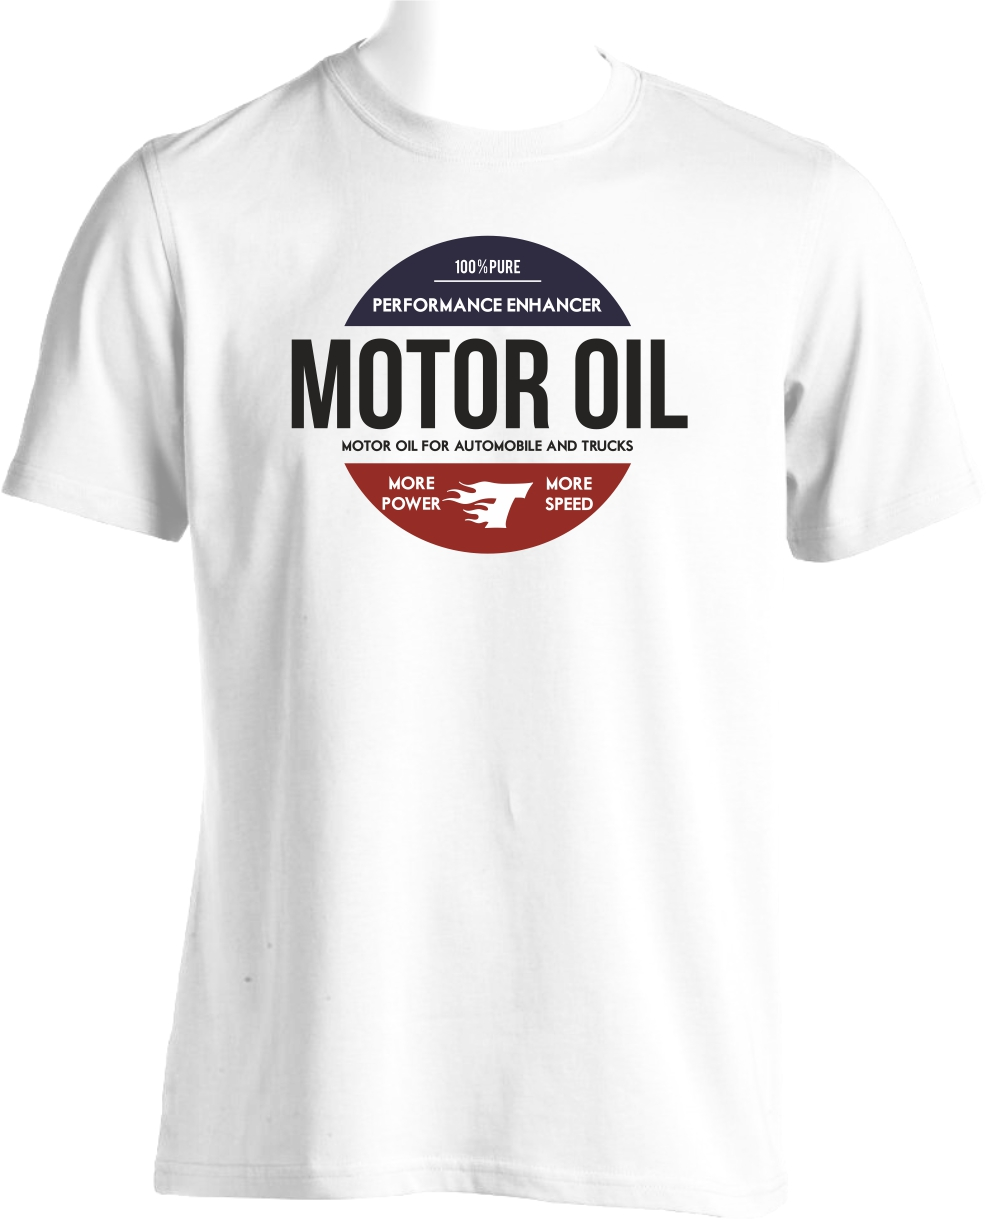 flocage tee shirt motor oil